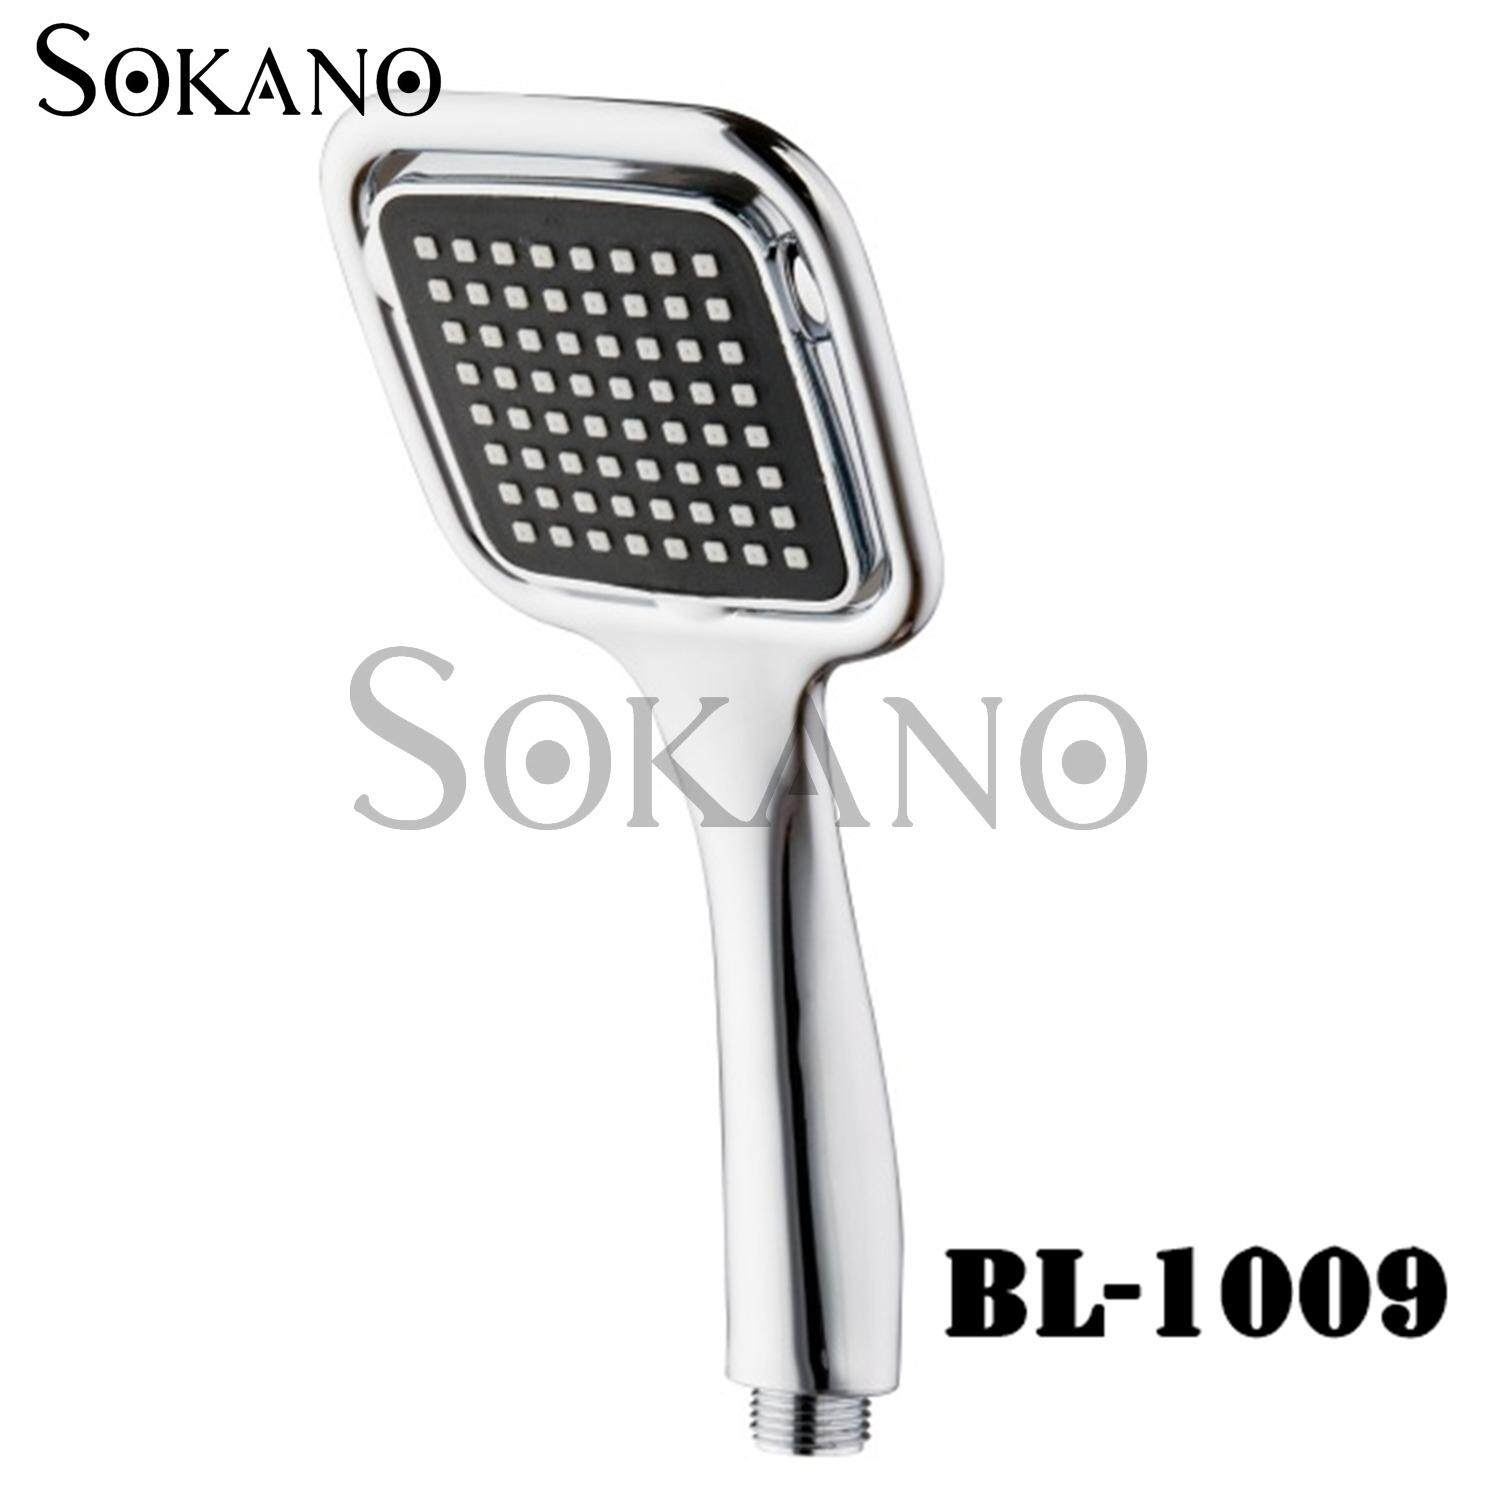 SOKANO BL-1009 Premium Water Saving Shower Sprayer Head (Compatible with Existing Shower Part)